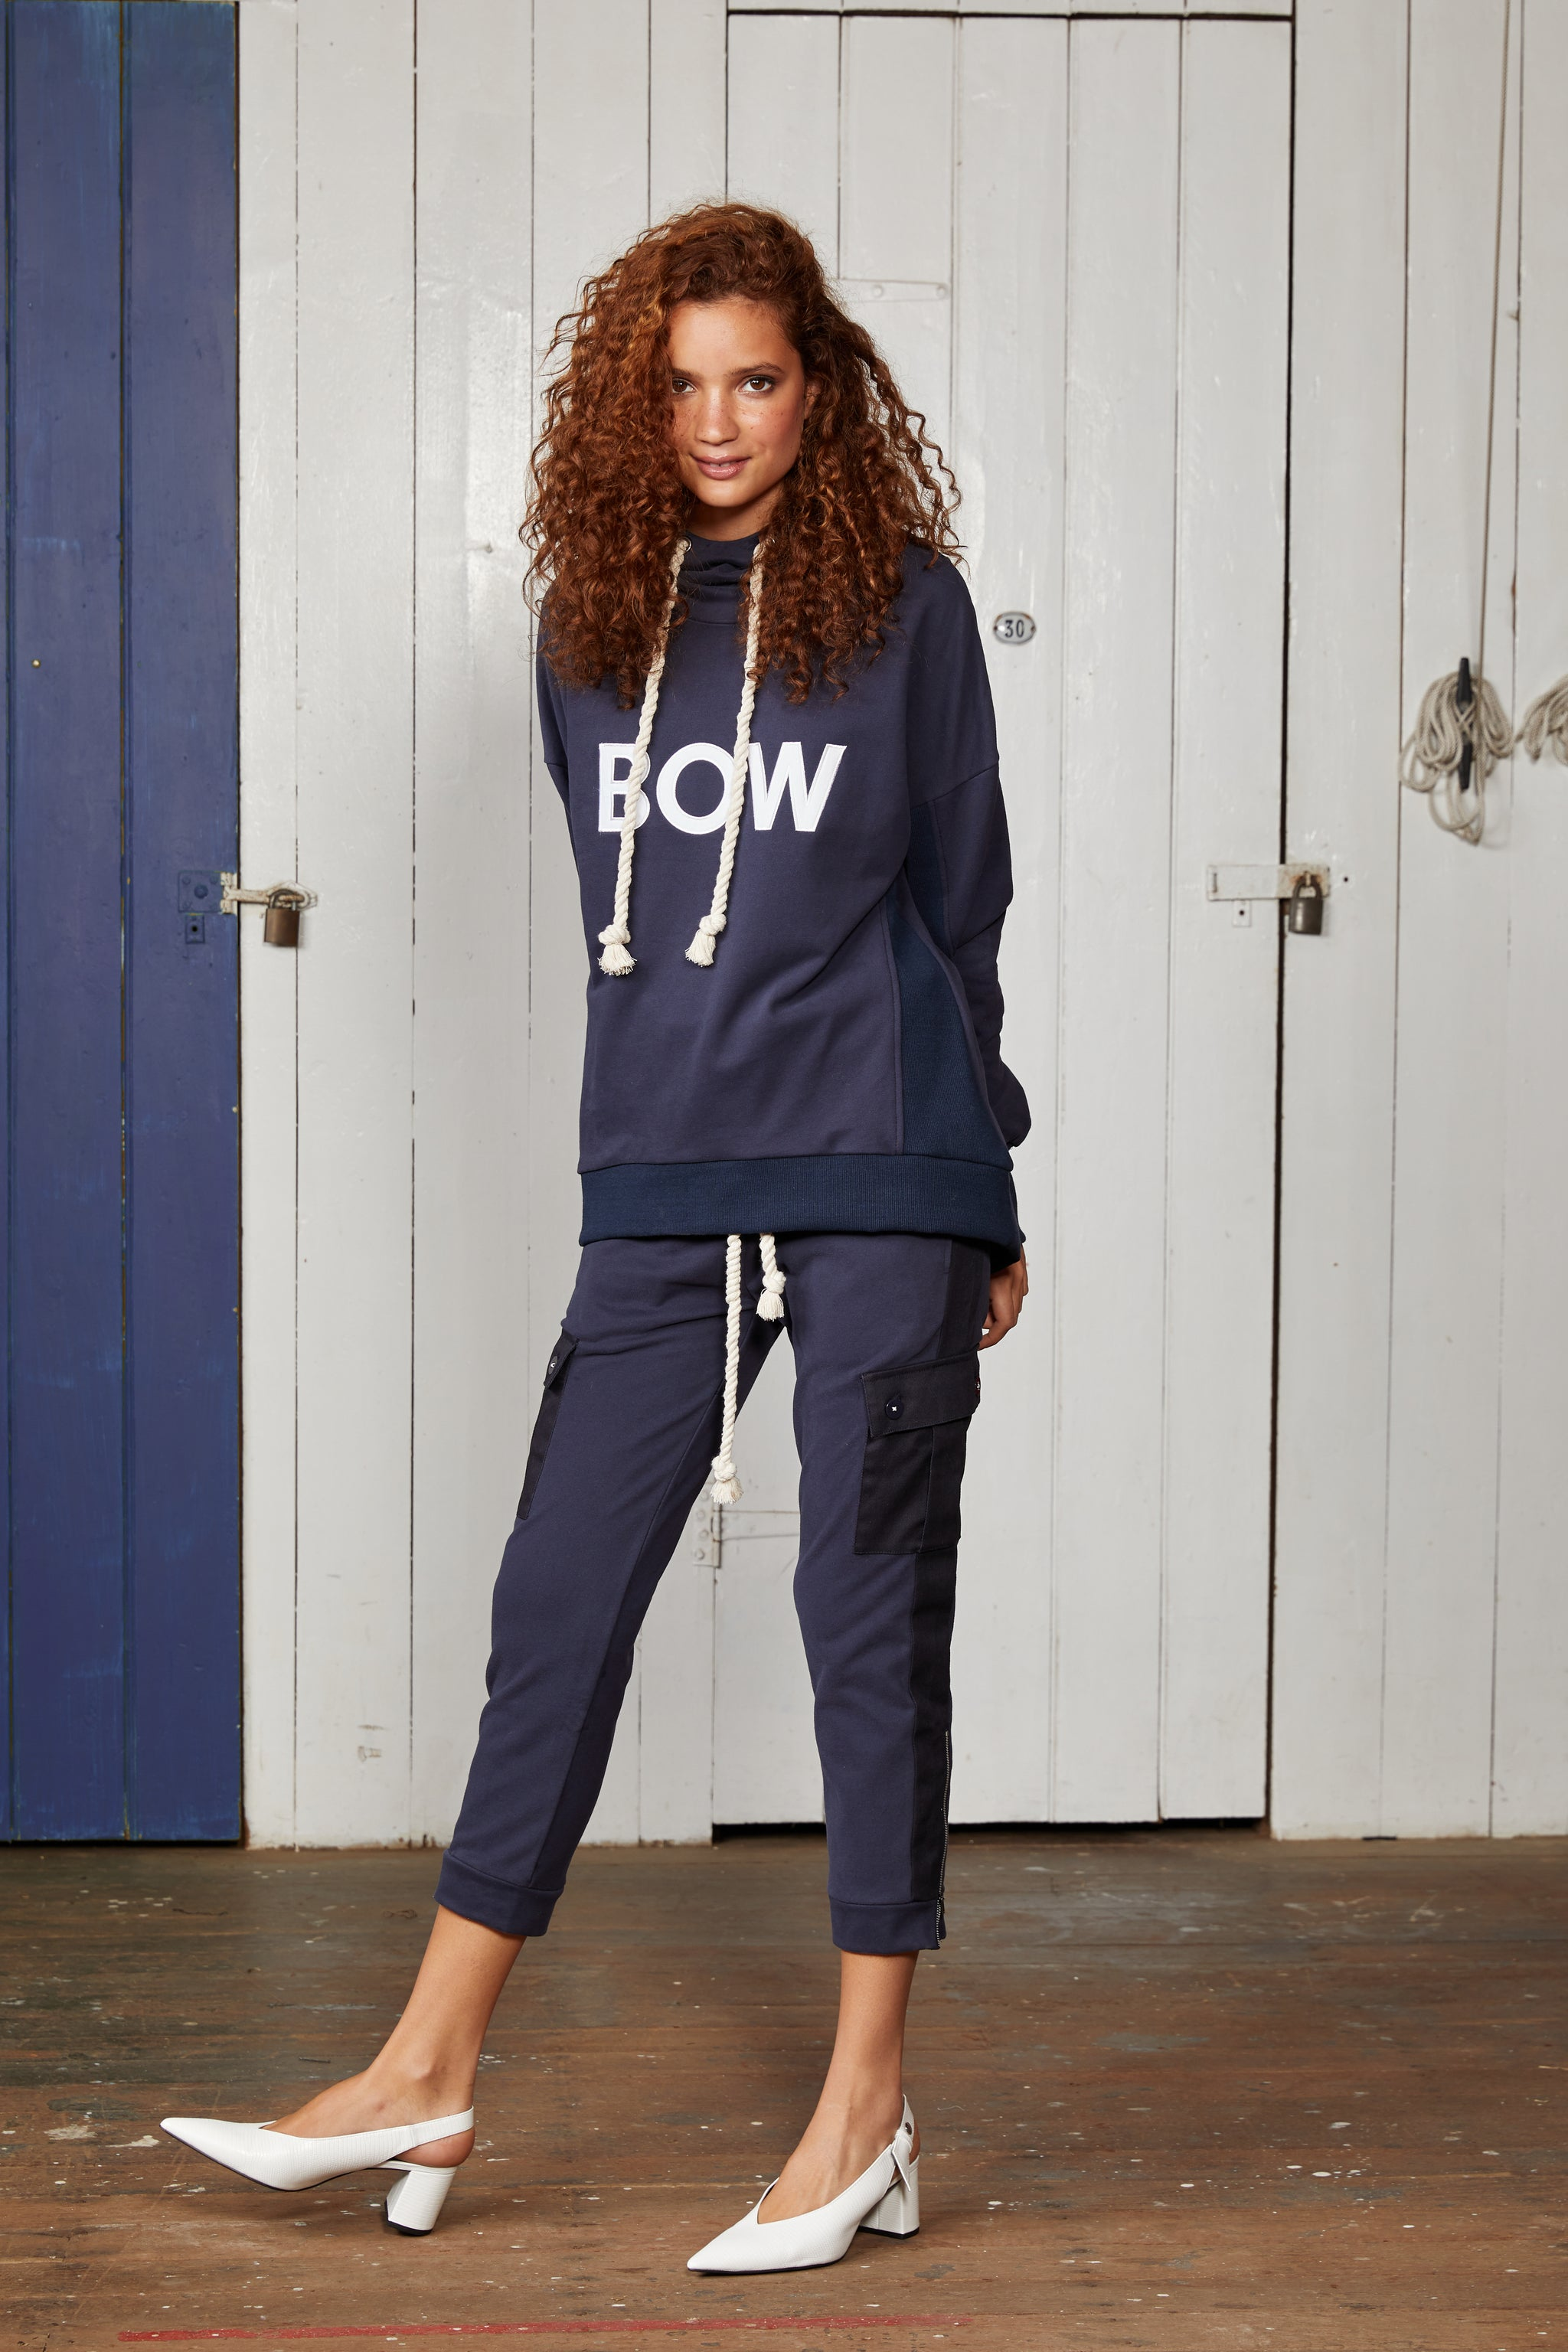 Binny Ladies Suede Cotton Navy Blue Bow and Stern Relaxed Hoodie with Cowl Neck Collar